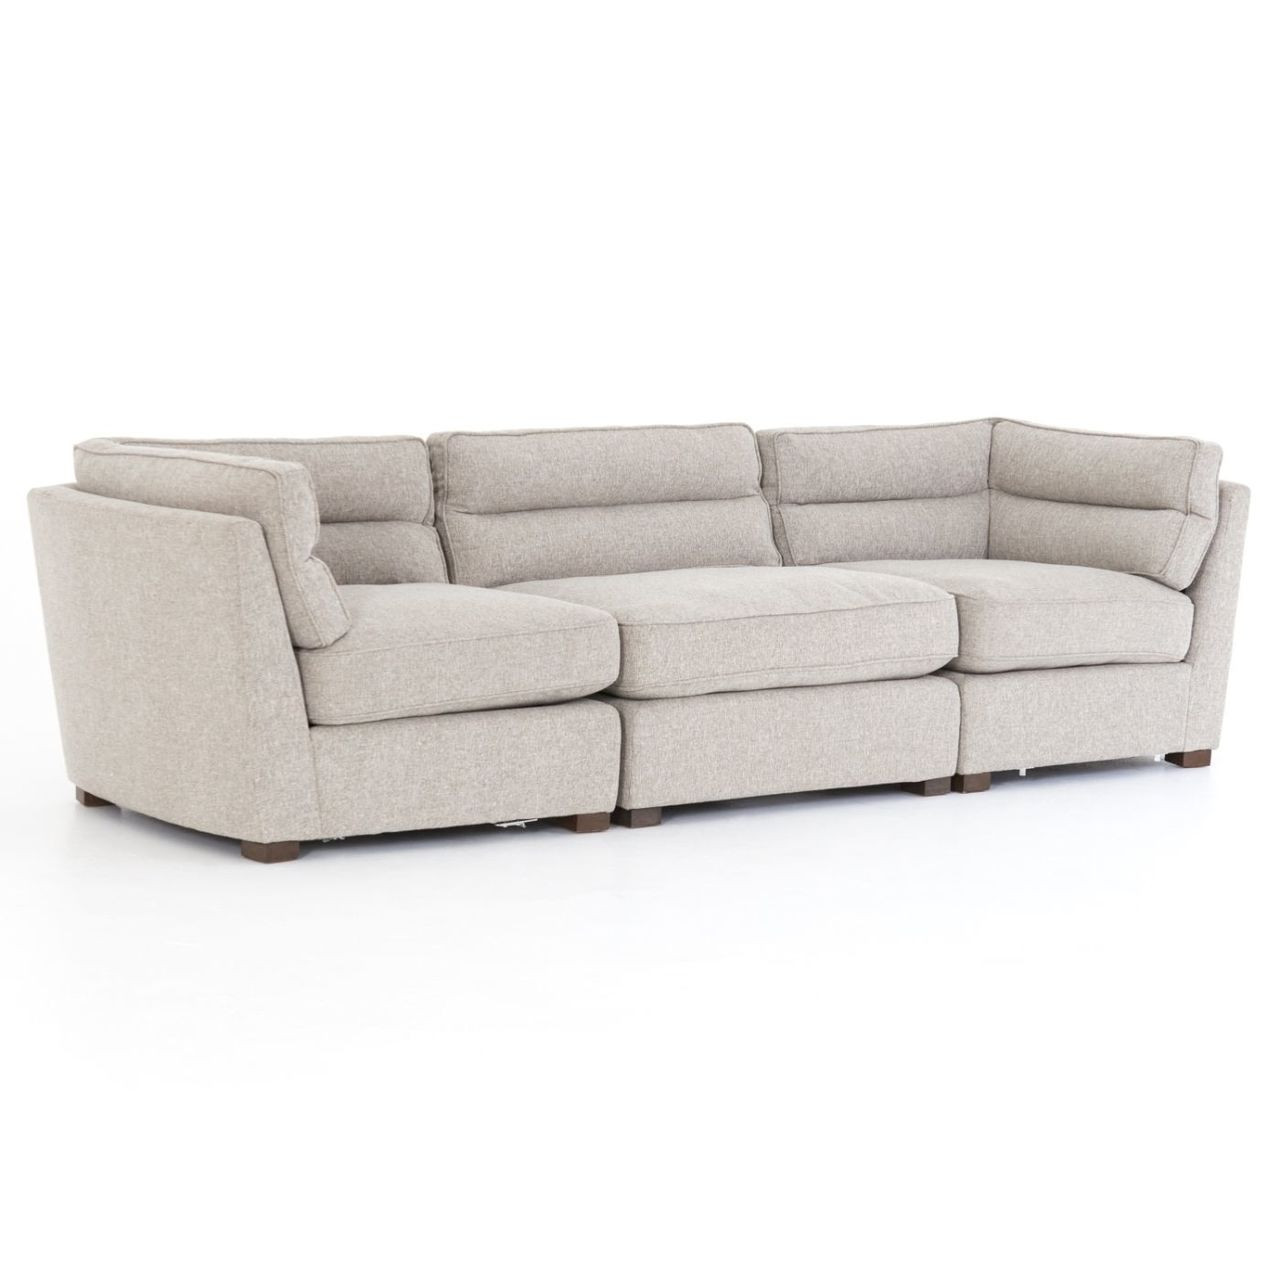 Two Sided Sofa Connell Channel Back 3 Pc Modular Sofa 114